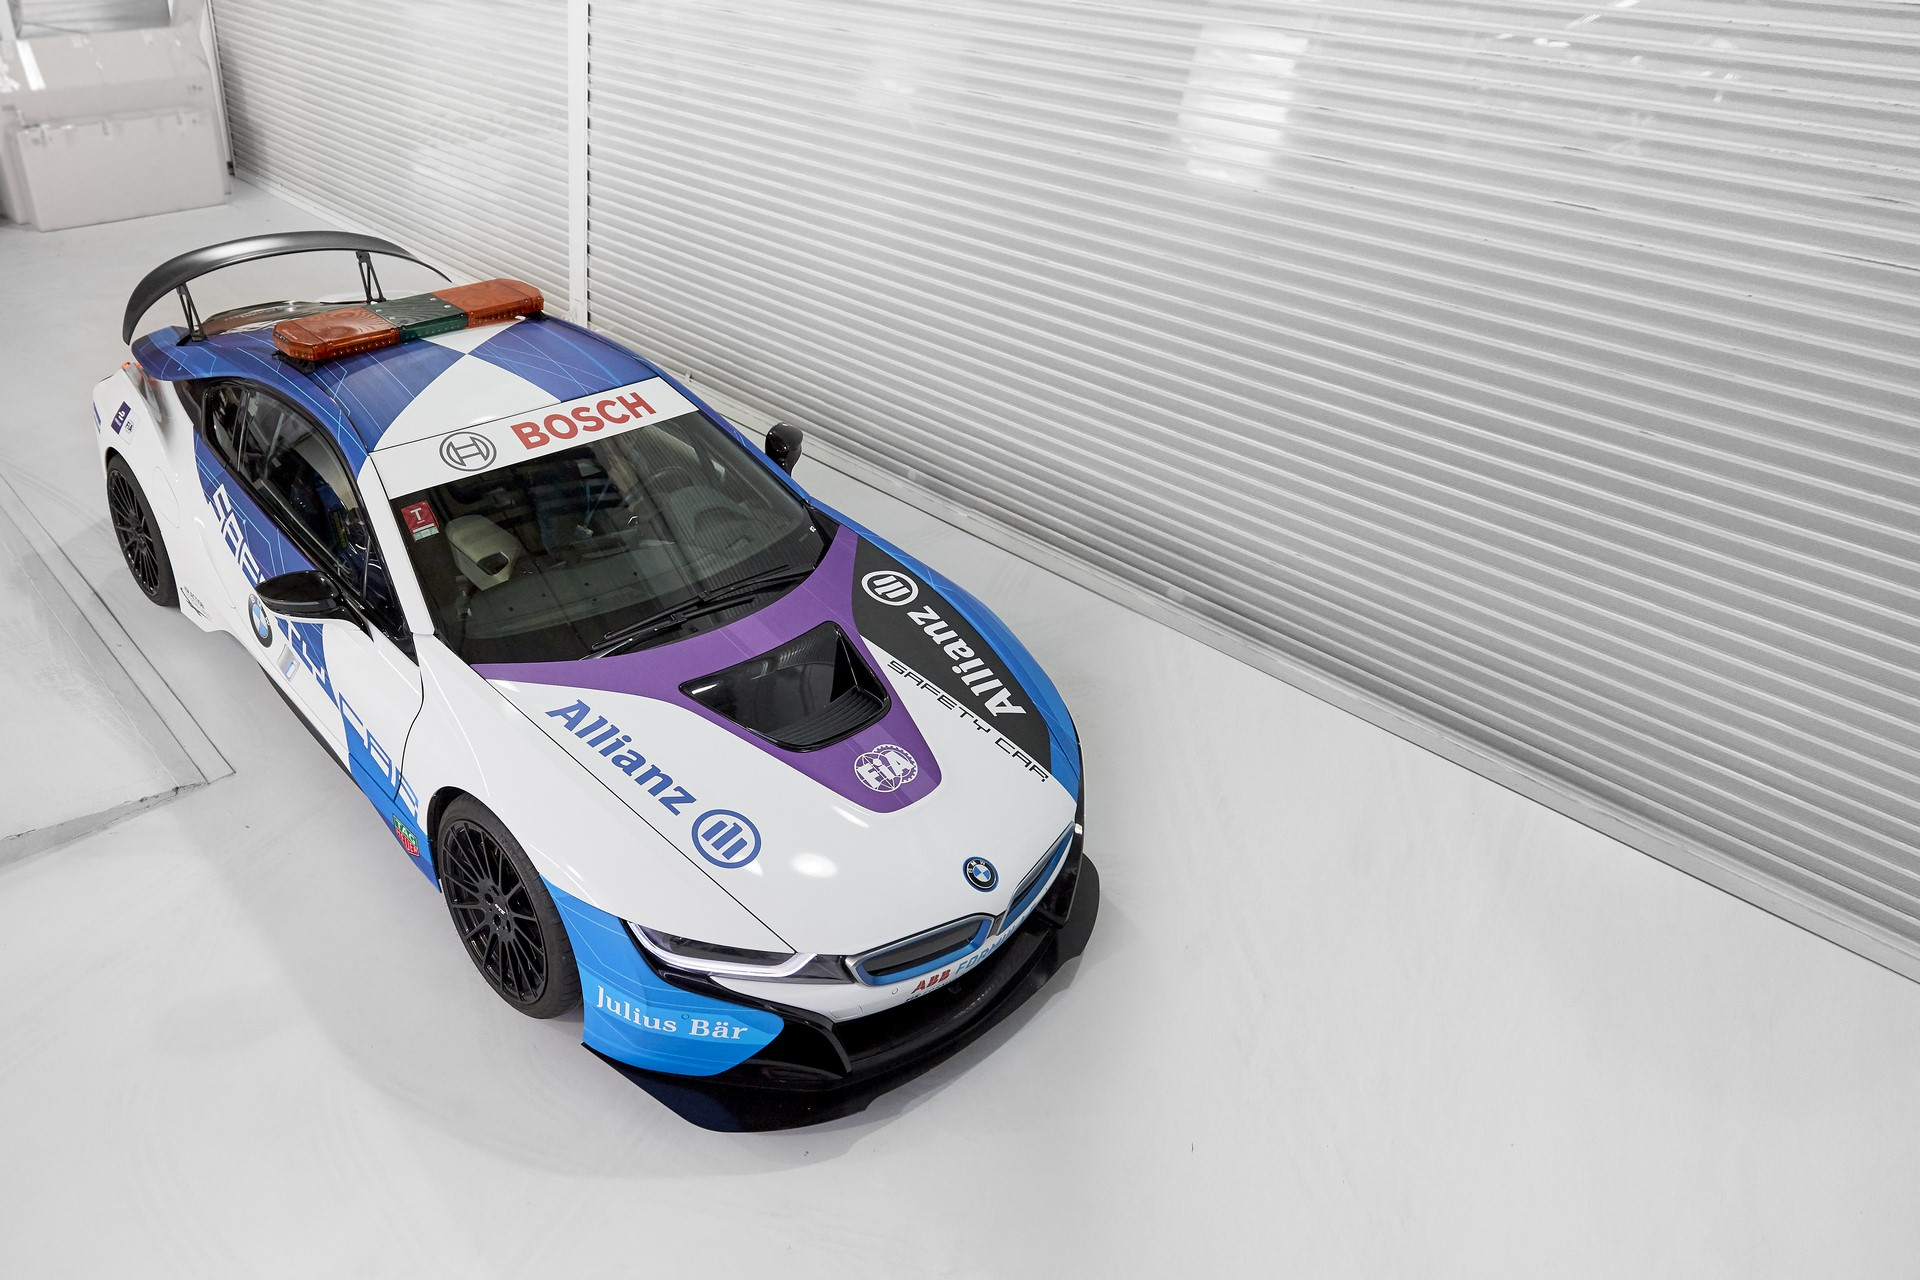 BMW i8 Formula E safety car 2019 (4)